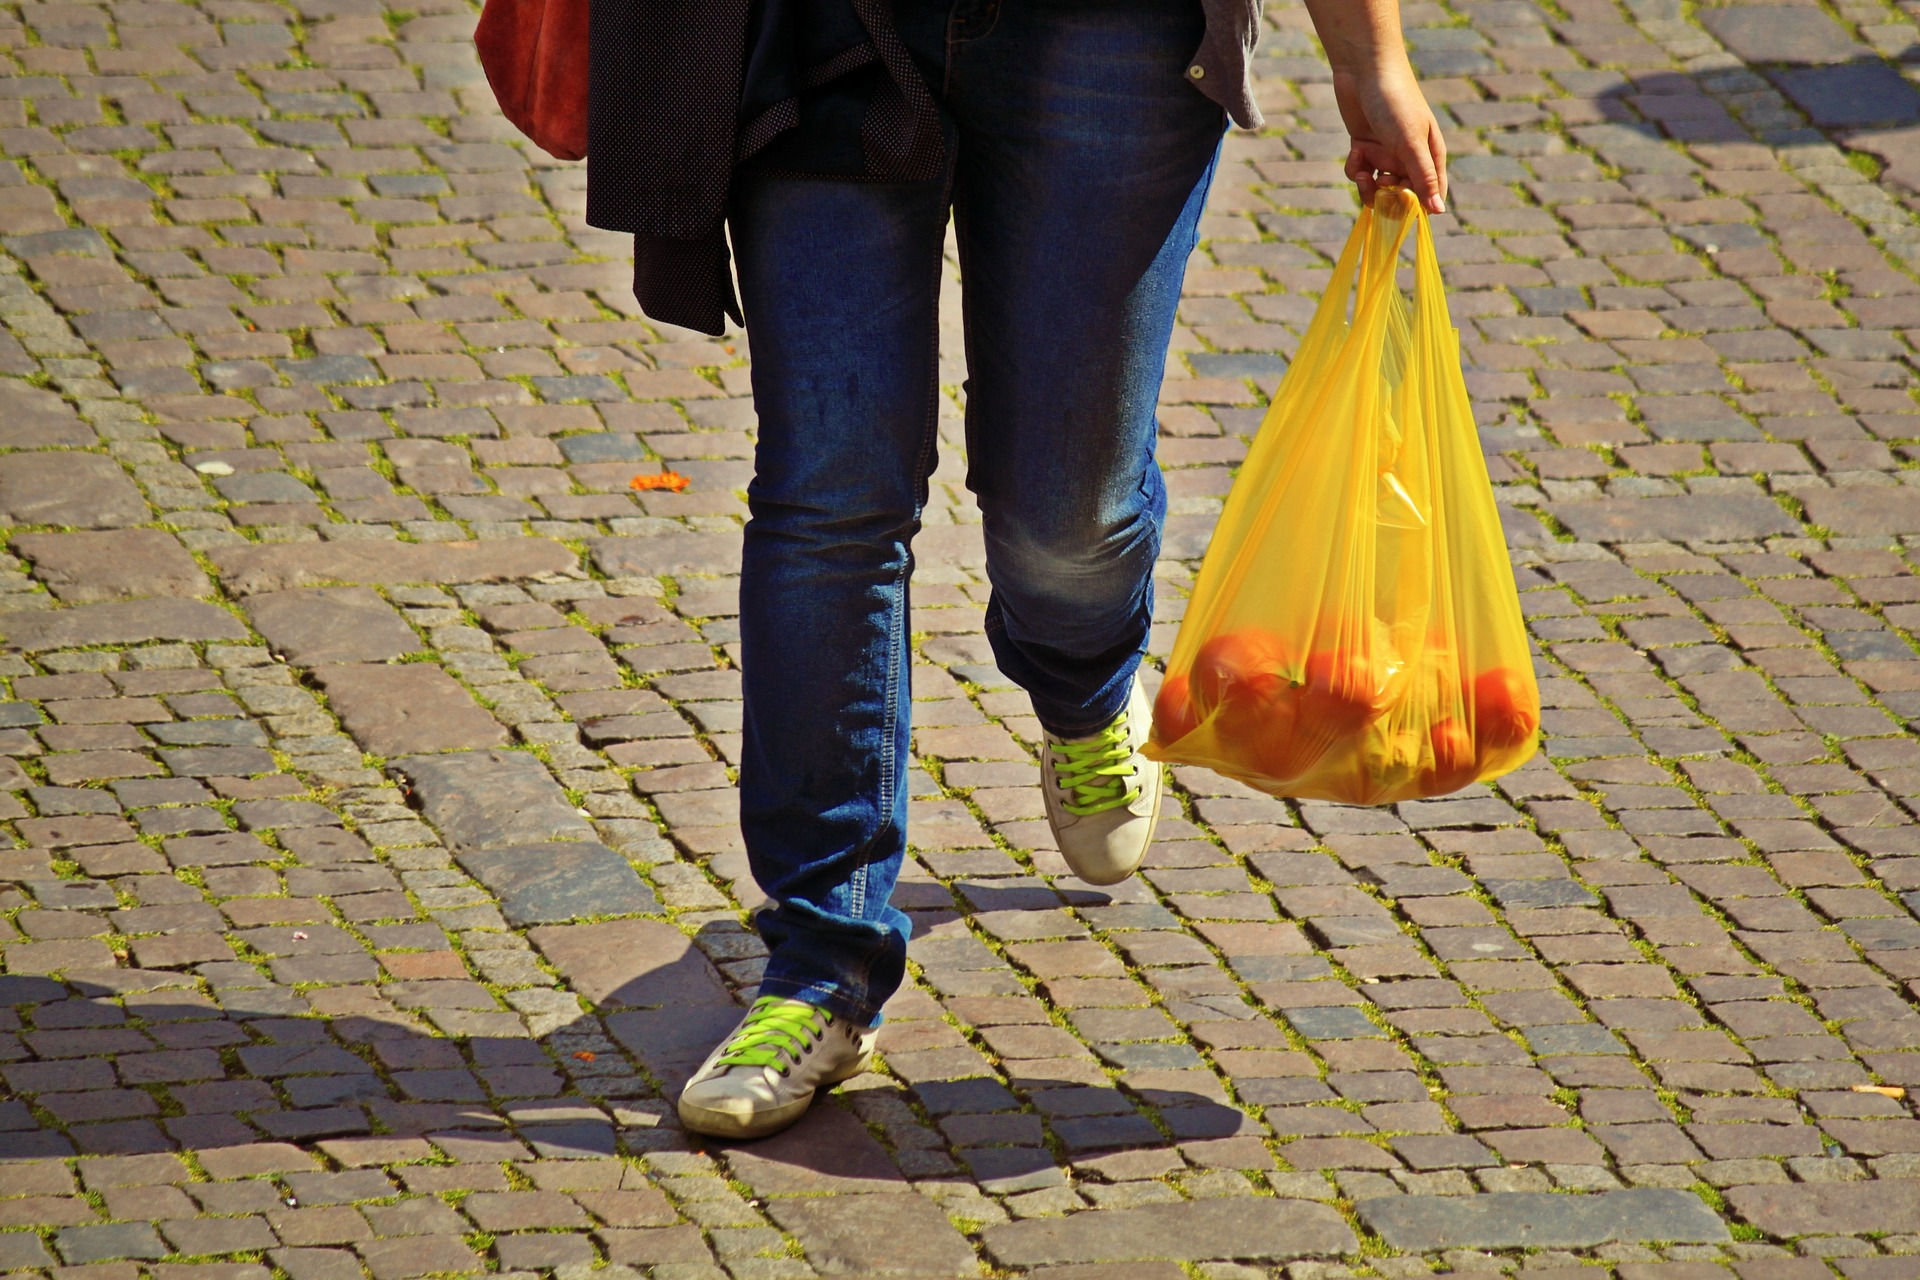 How often do you forget to take a carry bag from home when out shopping? A 'zero waste' goal is a life-changing journey.